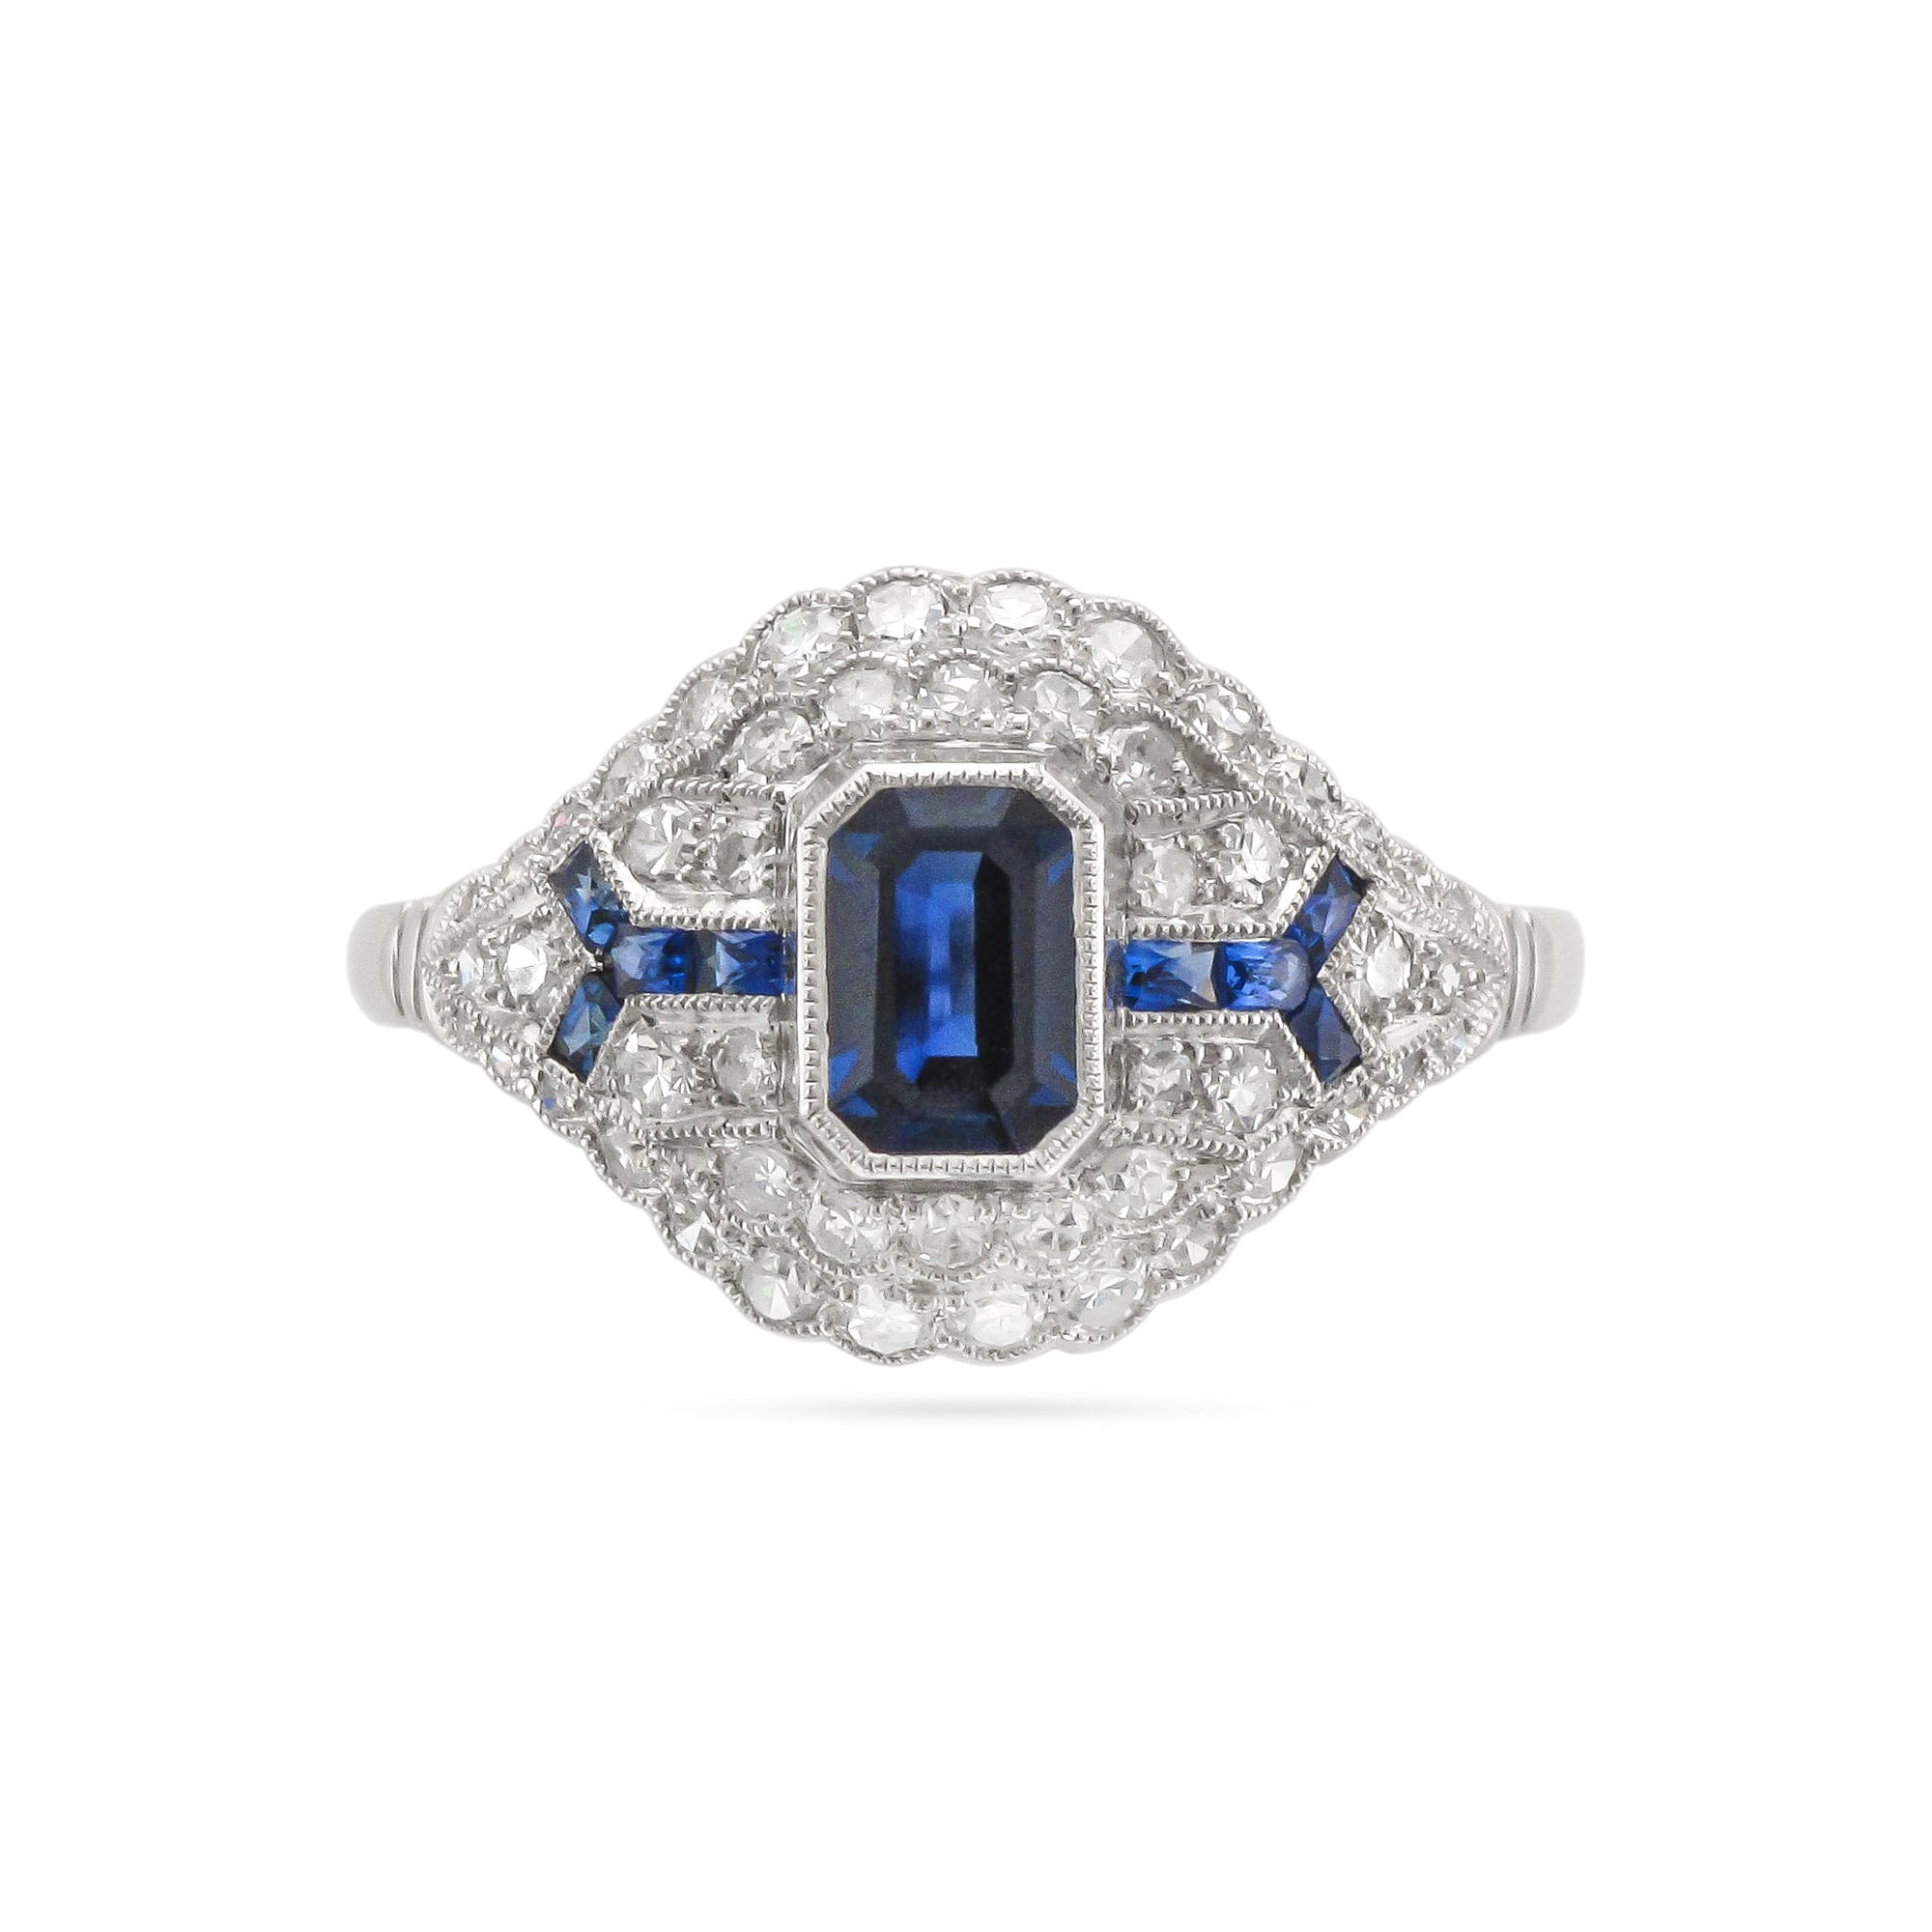 Vintage 18ct White Gold Sapphire and Diamond Cluster Ring